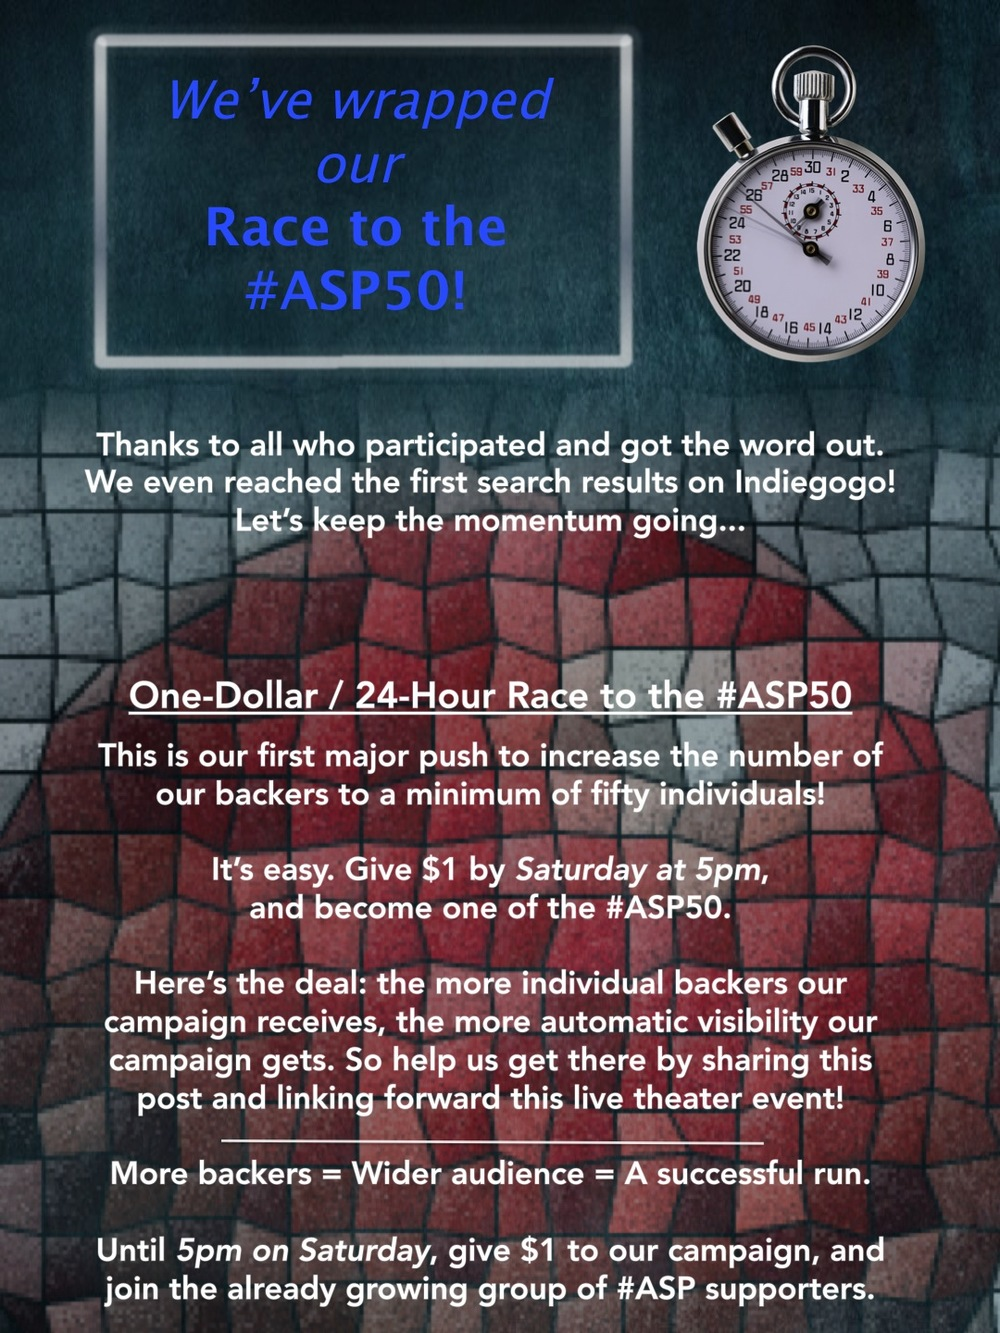 End of One-Dollar / 24-Hour Race to the #ASP50